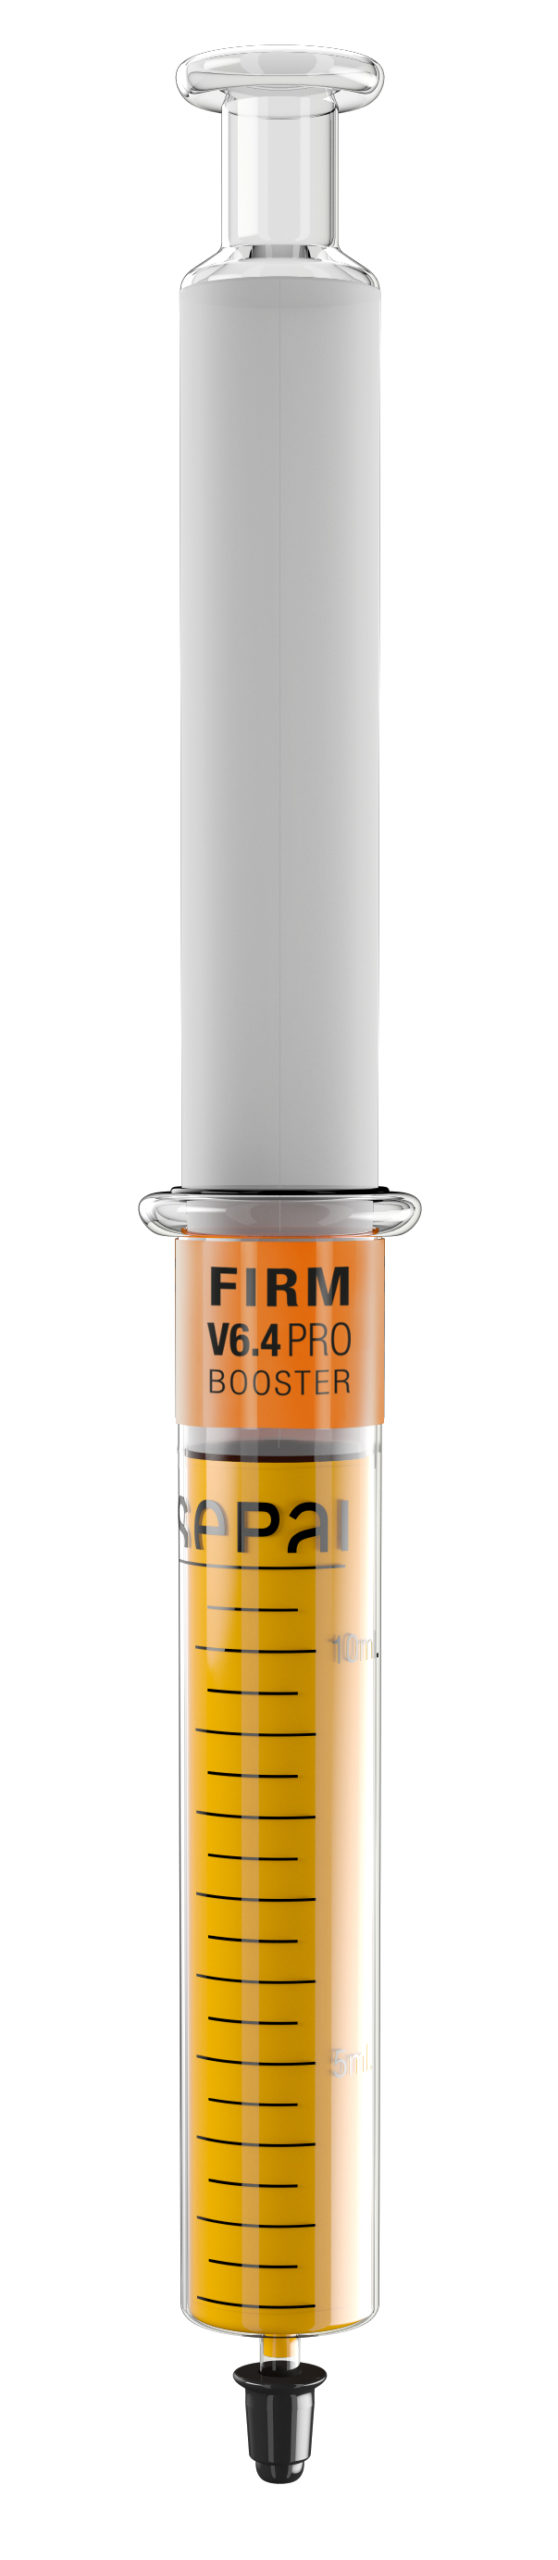 Sepai Tune It Firm V6.4 Face Booster Syringe